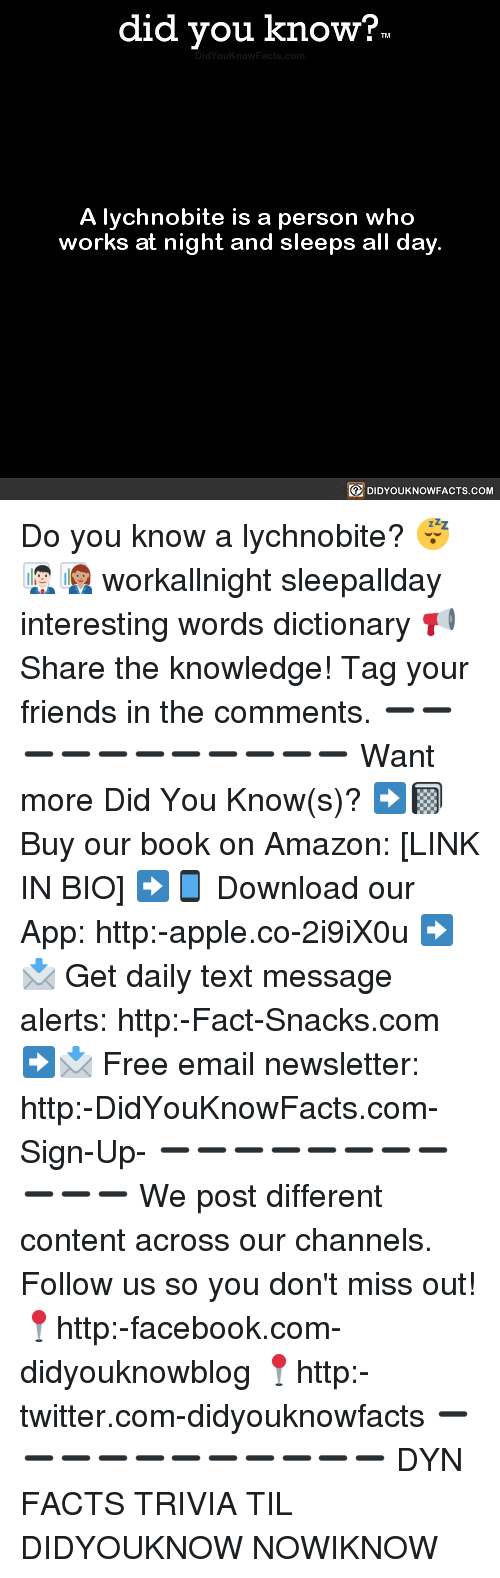 Amazon, Apple, and Facebook: did you know?  A lychnobite is a person who  works at night and sleeps all day  DIDYOUKNOWFACTS.COM Do you know a lychnobite? 😴👨🏻‍💼👩🏽‍💼 workallnight sleepallday interesting words dictionary 📢 Share the knowledge! Tag your friends in the comments. ➖➖➖➖➖➖➖➖➖➖➖ Want more Did You Know(s)? ➡📓 Buy our book on Amazon: [LINK IN BIO] ➡📱 Download our App: http:-apple.co-2i9iX0u ➡📩 Get daily text message alerts: http:-Fact-Snacks.com ➡📩 Free email newsletter: http:-DidYouKnowFacts.com-Sign-Up- ➖➖➖➖➖➖➖➖➖➖➖ We post different content across our channels. Follow us so you don't miss out! 📍http:-facebook.com-didyouknowblog 📍http:-twitter.com-didyouknowfacts ➖➖➖➖➖➖➖➖➖➖➖ DYN FACTS TRIVIA TIL DIDYOUKNOW NOWIKNOW